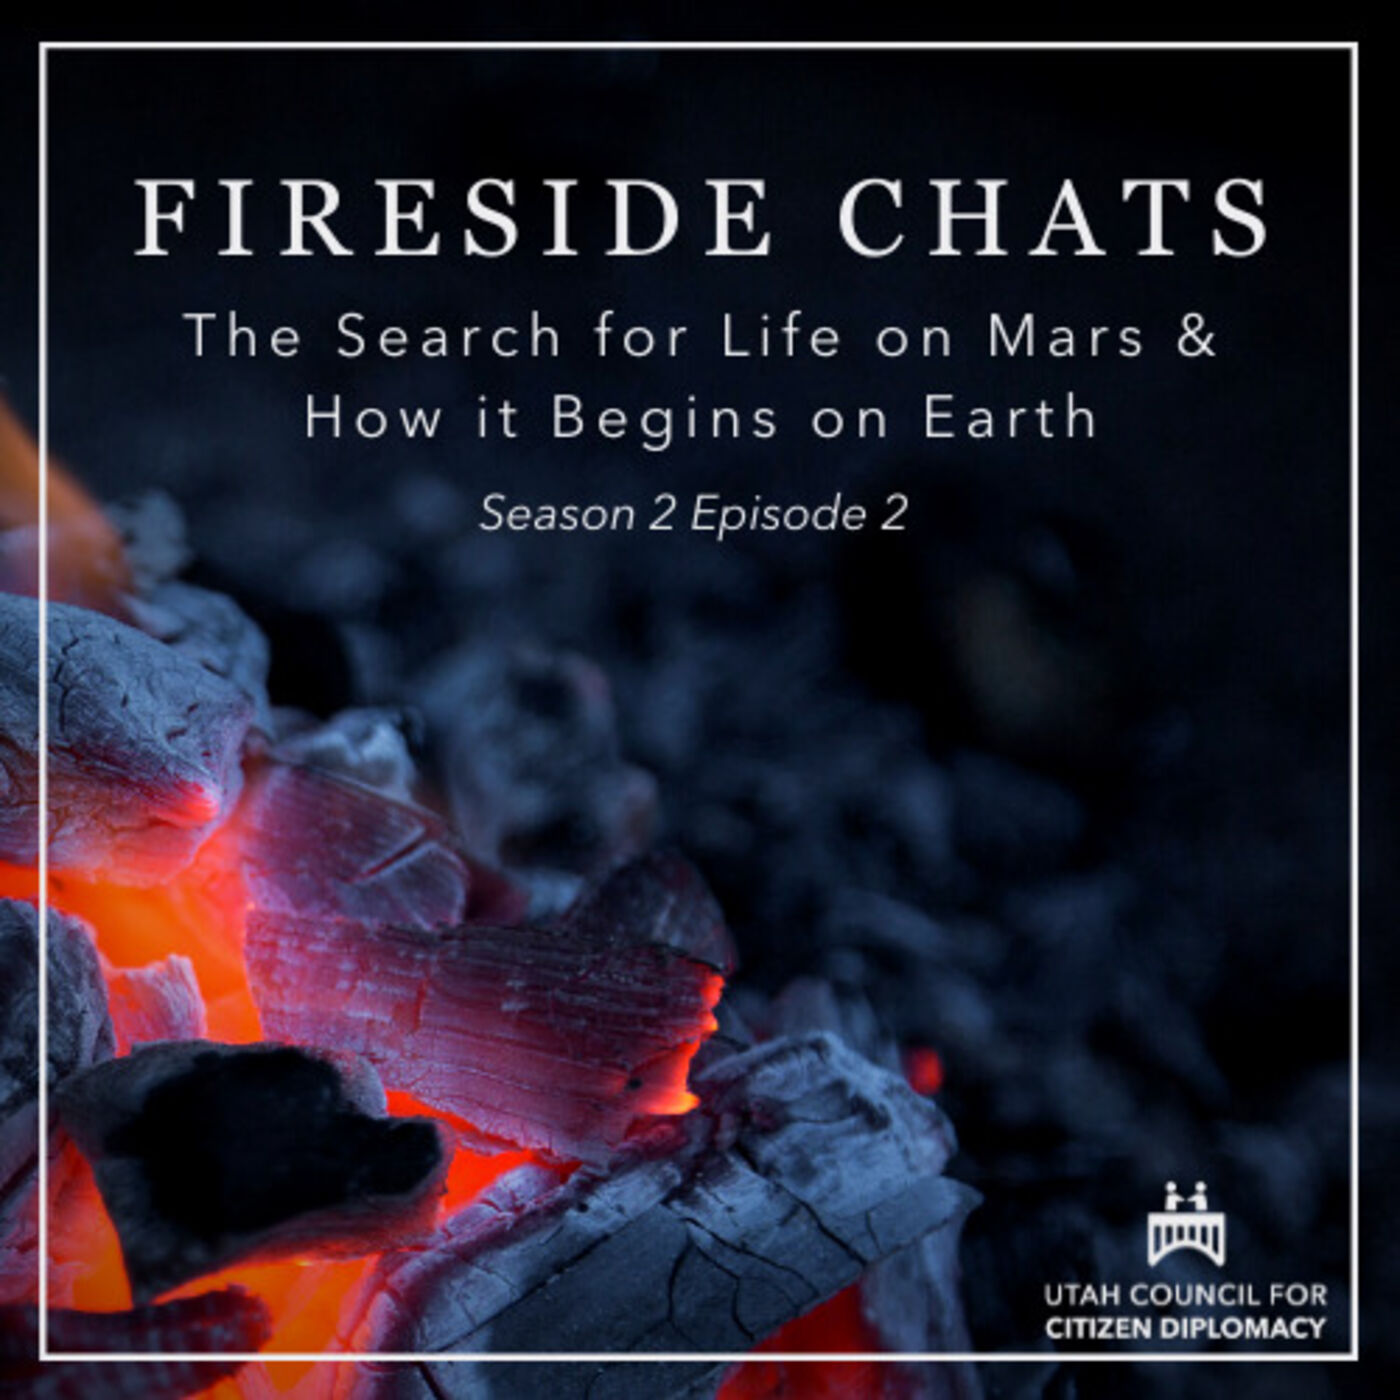 The Search for Life on Mars & How it Begins on Earth